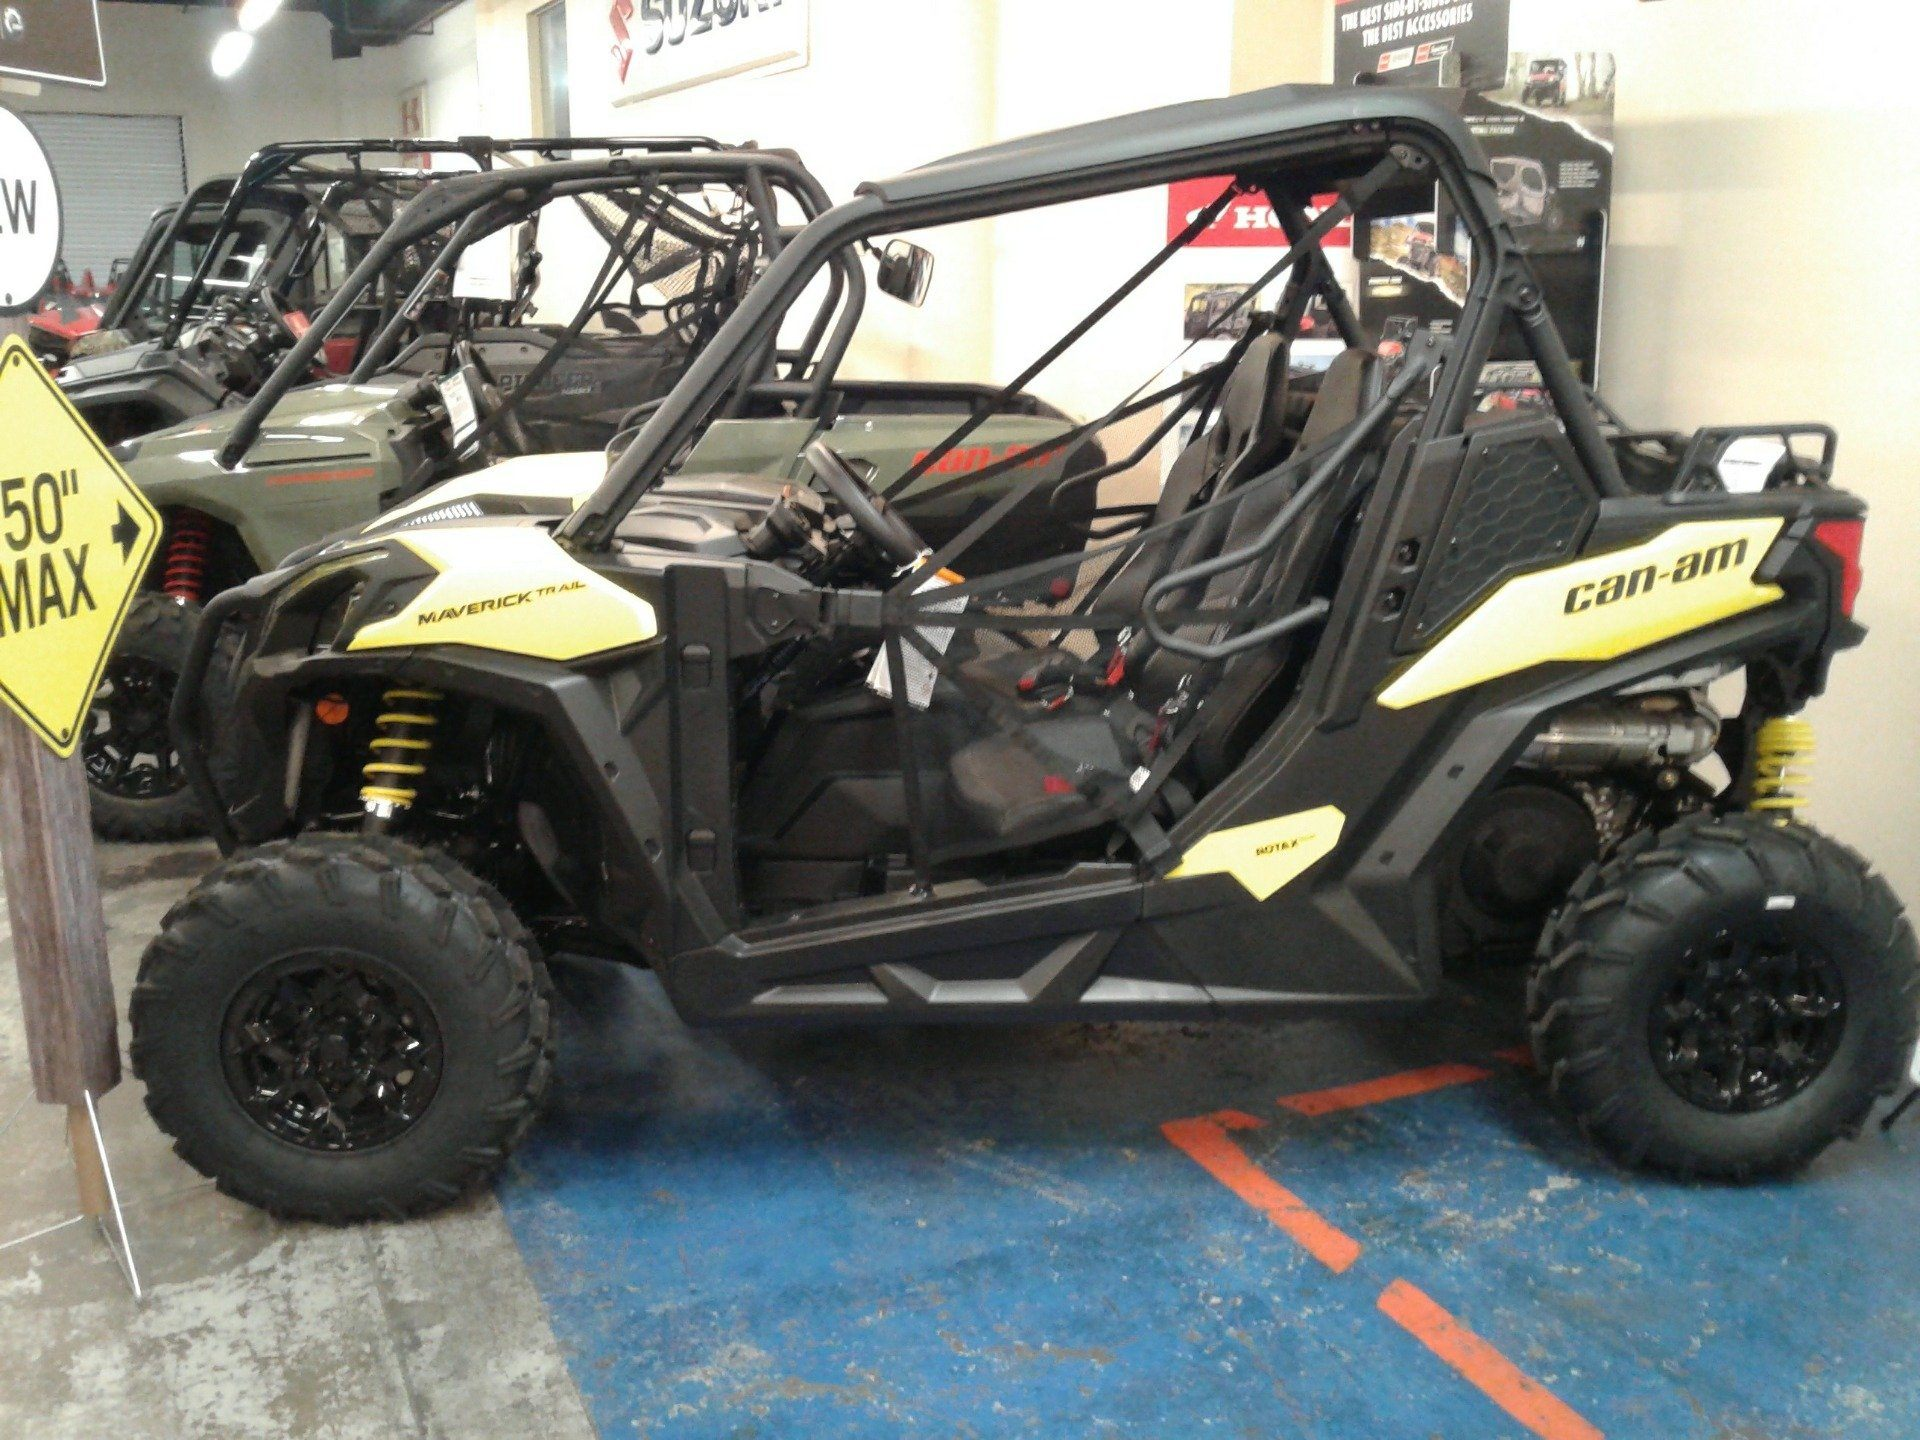 70 Maverick Wiring Diagram Schematics Diagrams 1970 Ford New 2018 Can Am Trail 800 Dps Utility Vehicles In